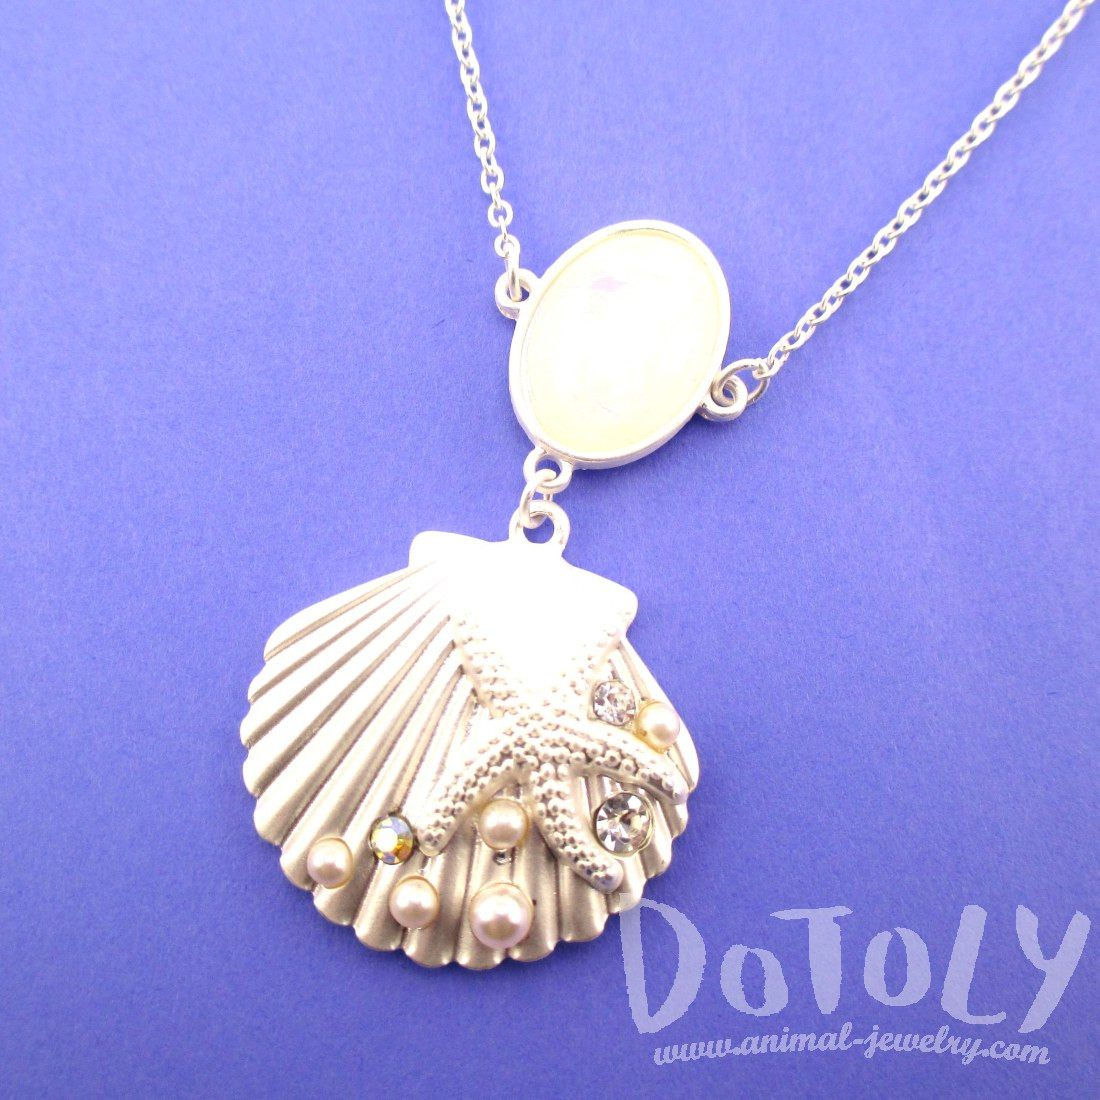 Seashell Starfish Sea Themed Mermaid Necklace in Silver